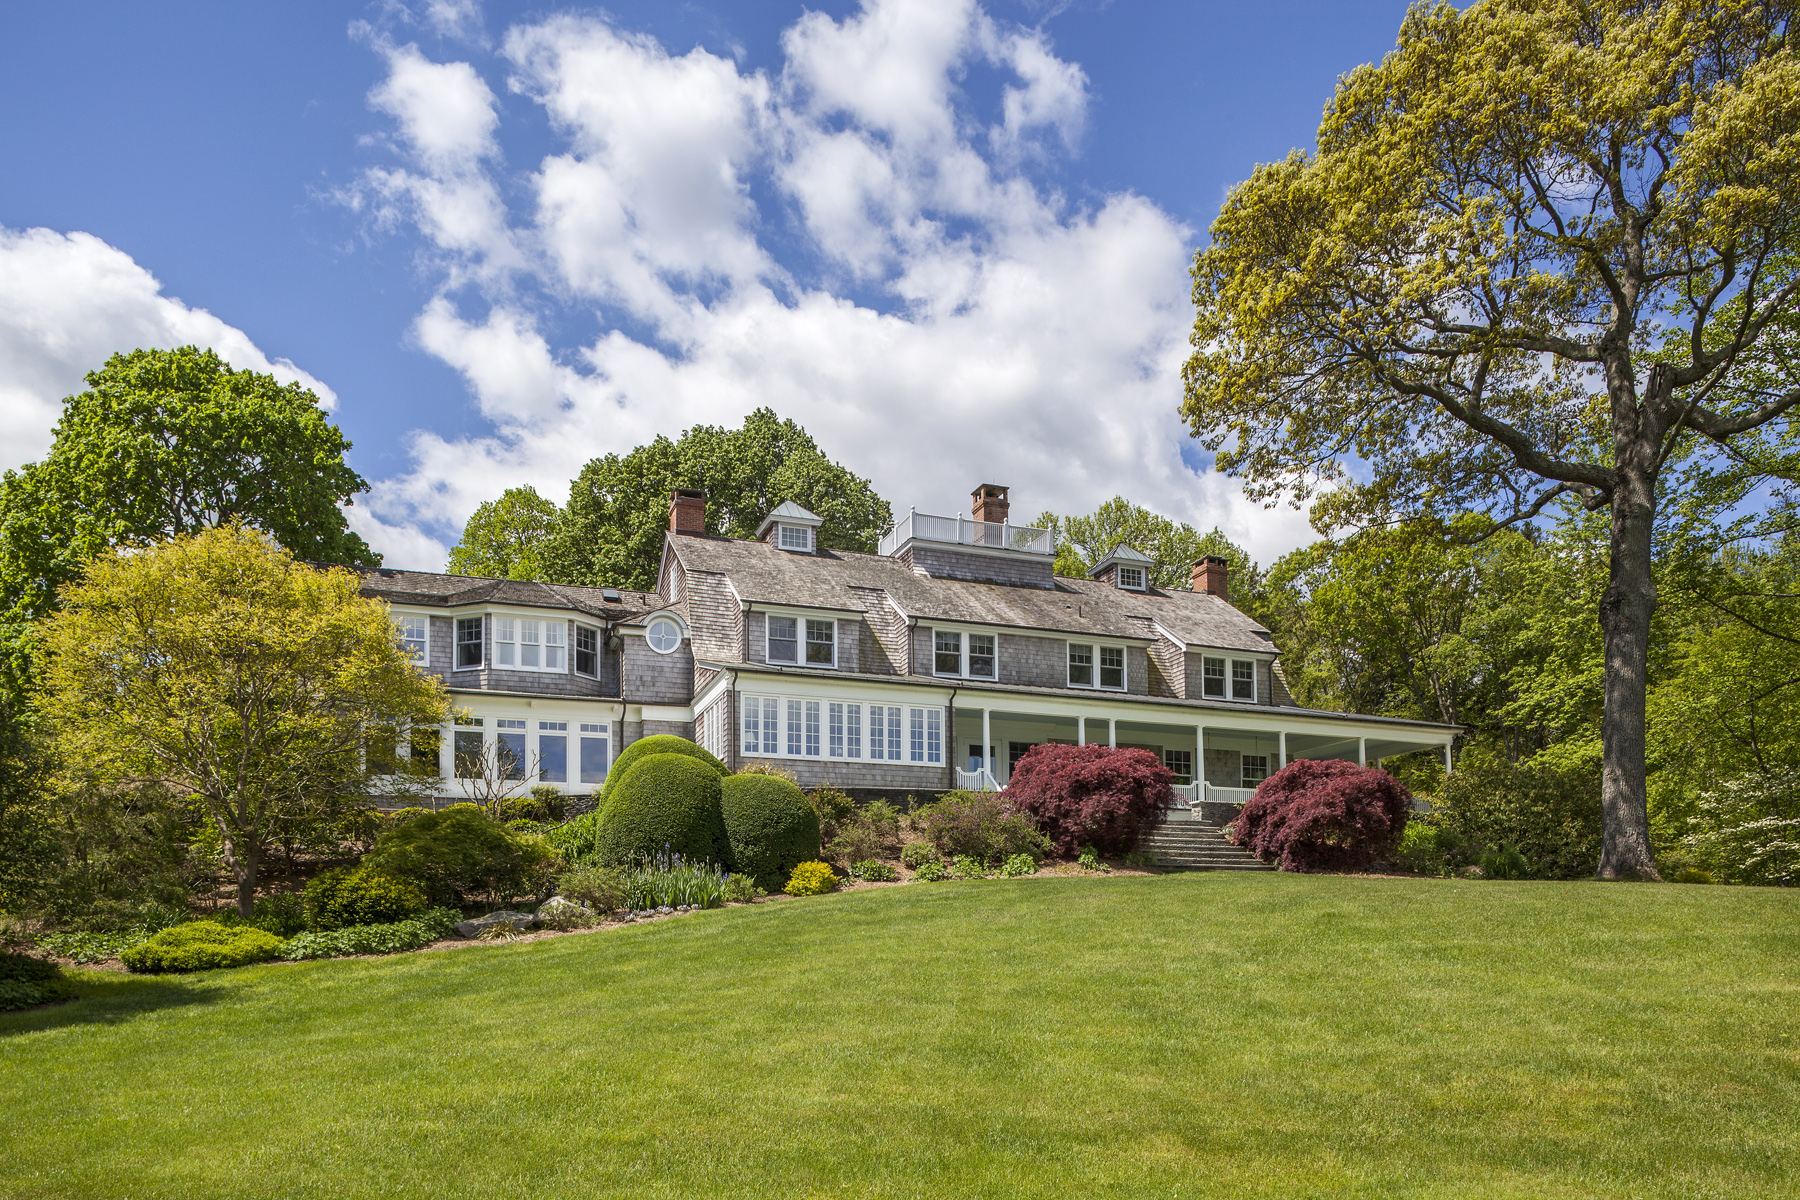 Single Family Home for Sale at Woodcrest 27 Woodcrest Dr Nissequogue, New York, 11780 United States